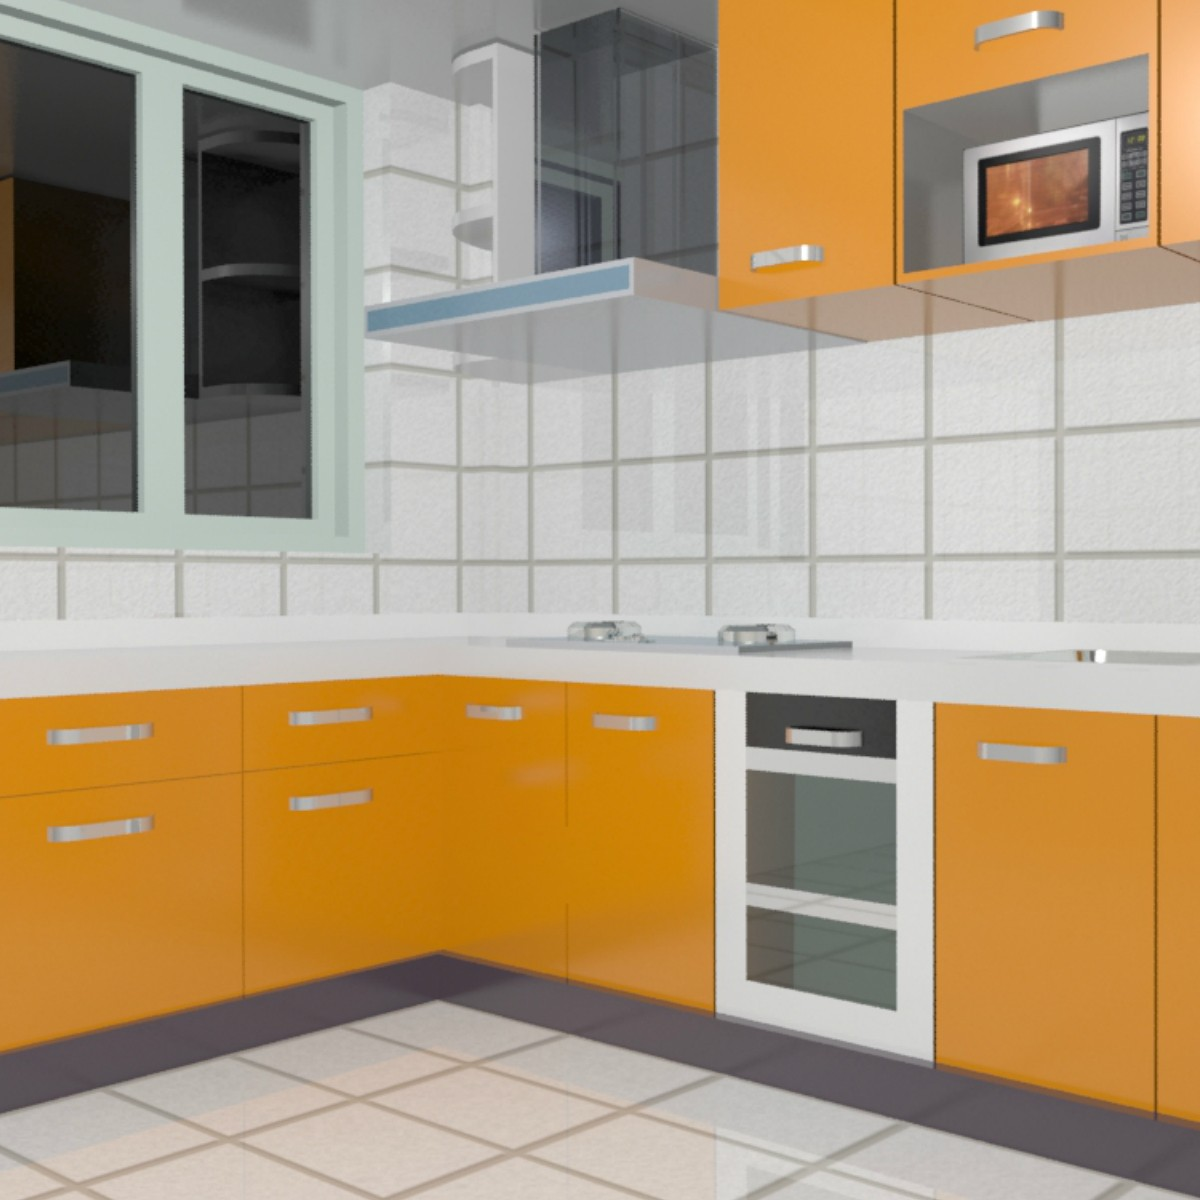 Foundation dezin decor 3d kitchen model design for Modular kitchen cupboard